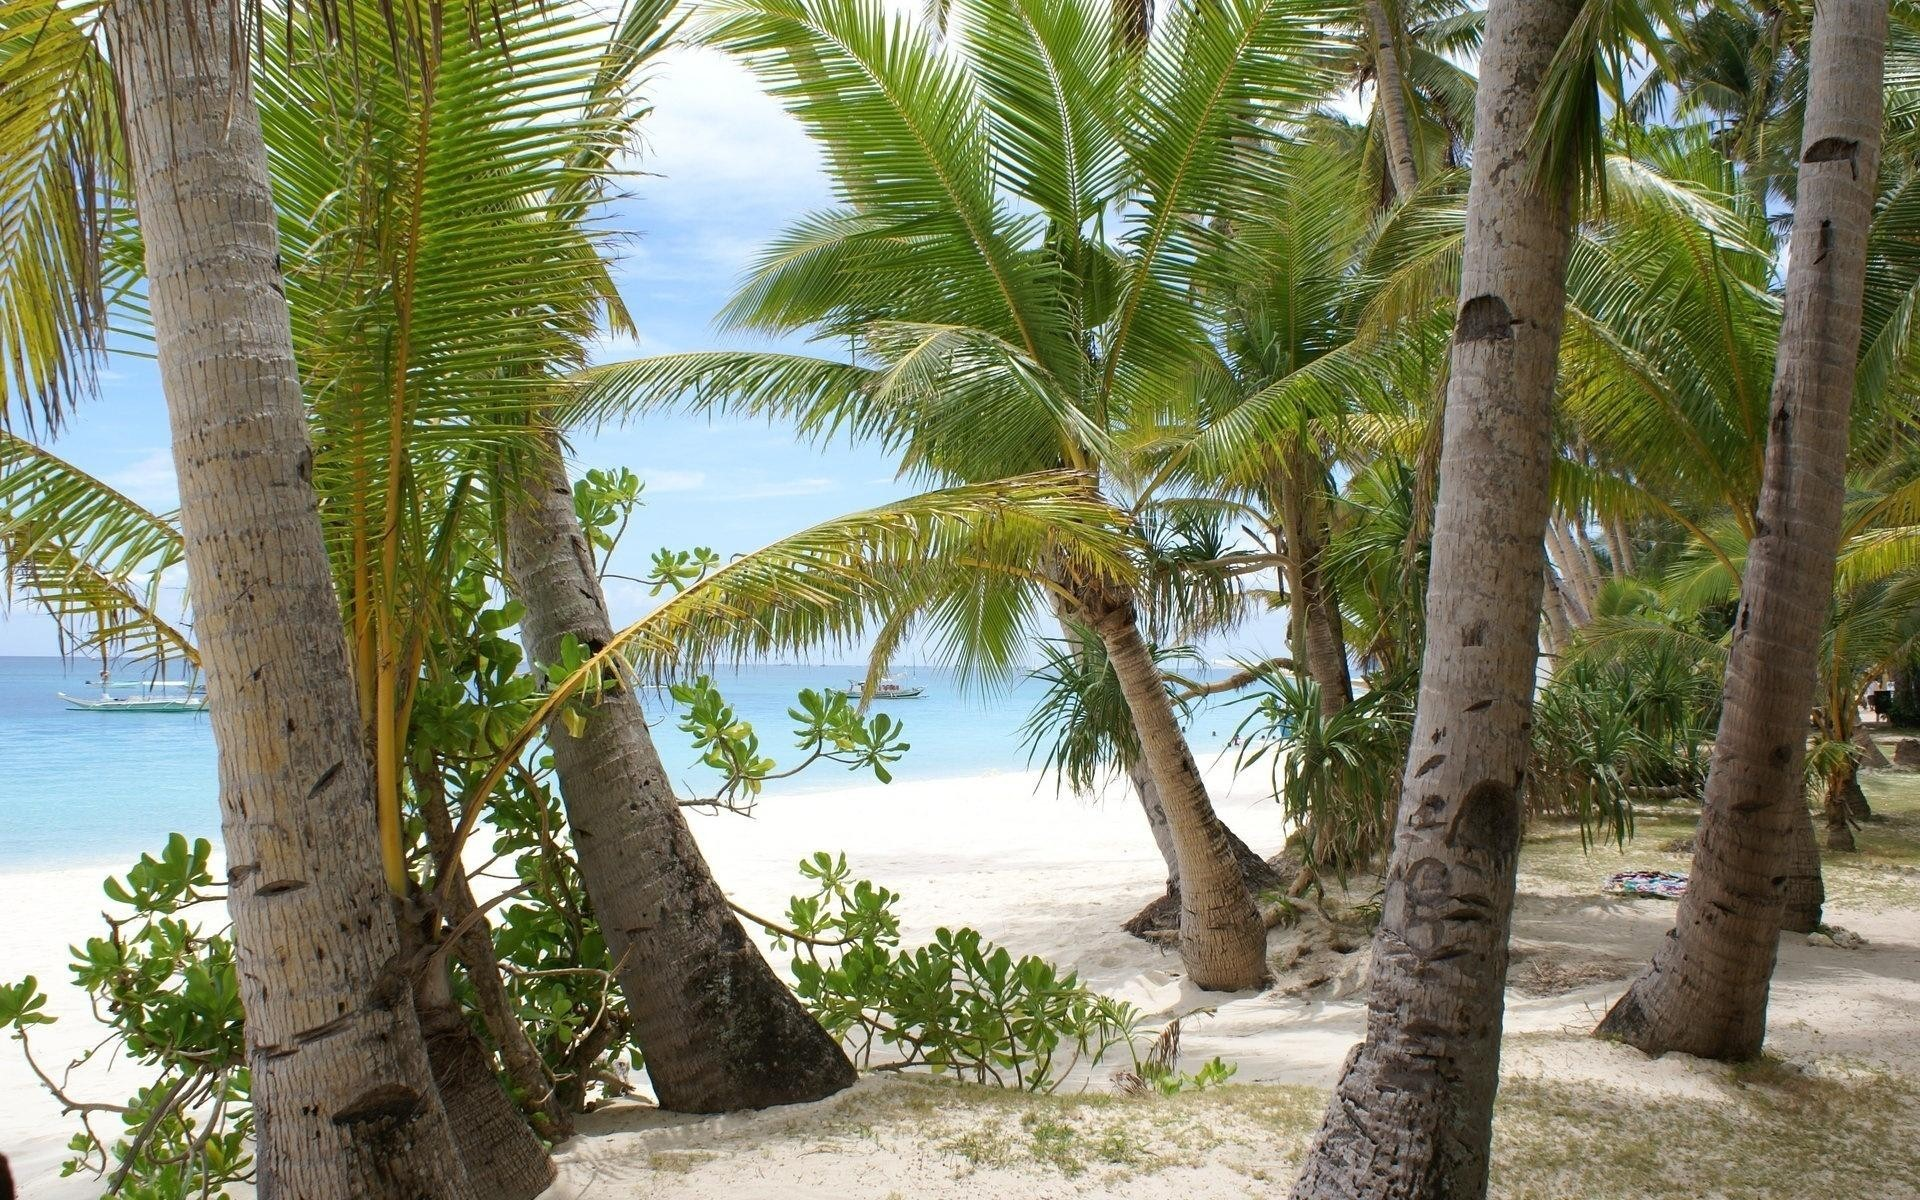 Cocont Trees at Beach Wallpaper